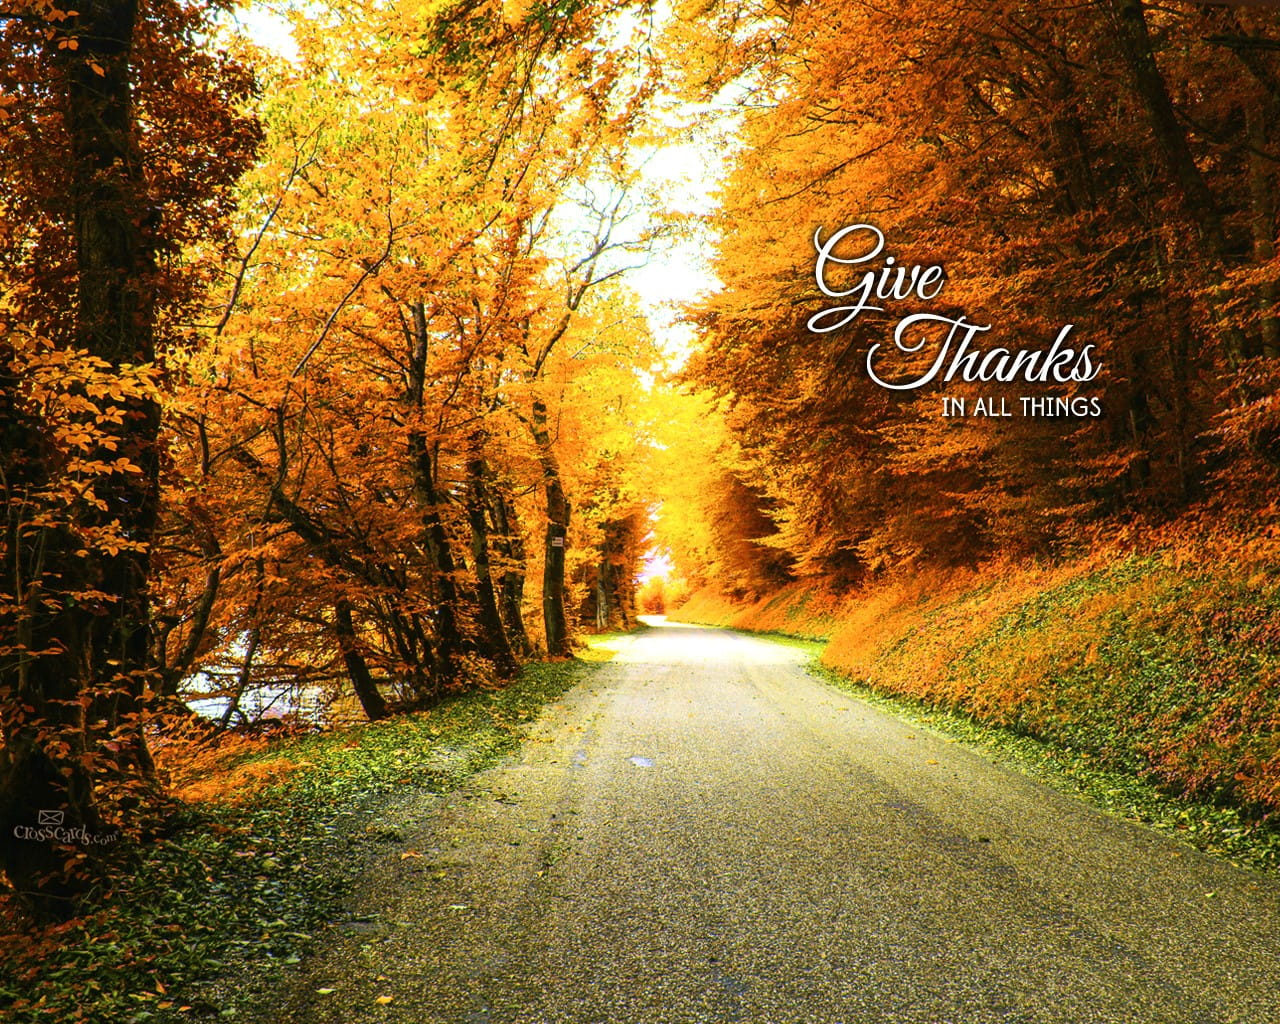 Give Thanks Desktop Wallpaper - Free Backgrounds